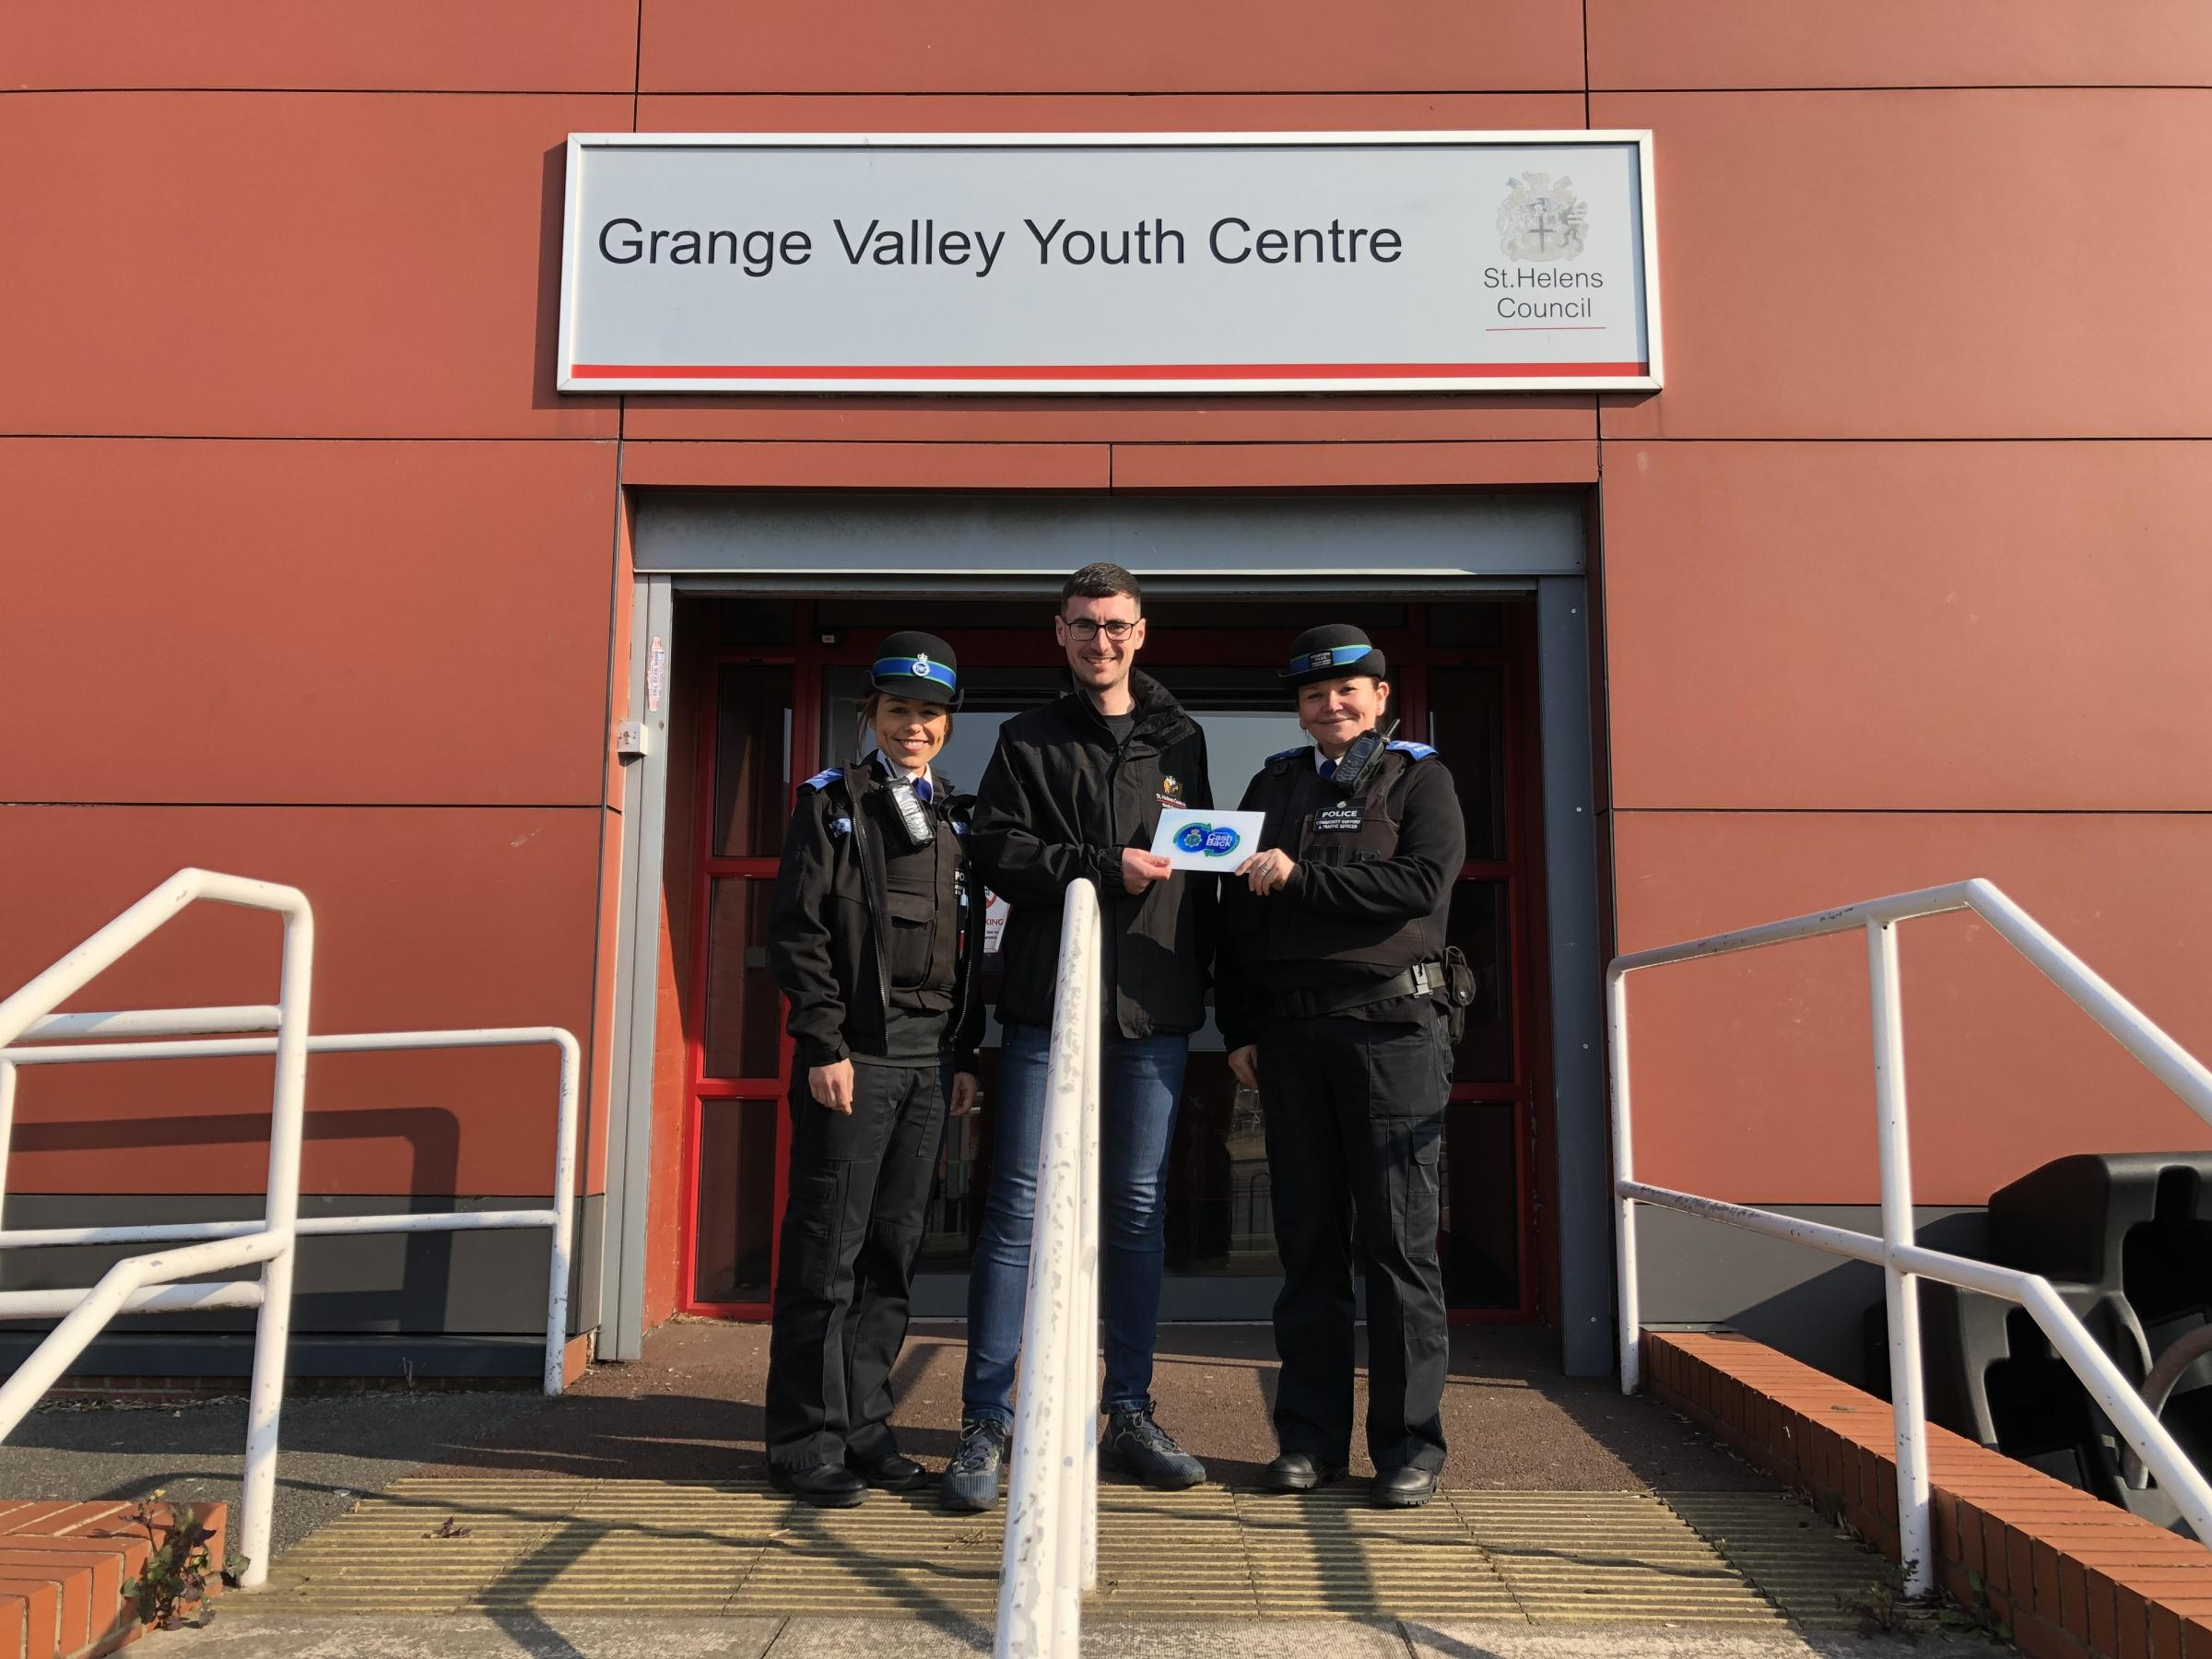 £16,000 fund for year-long project to deter youths from anti-social behaviour